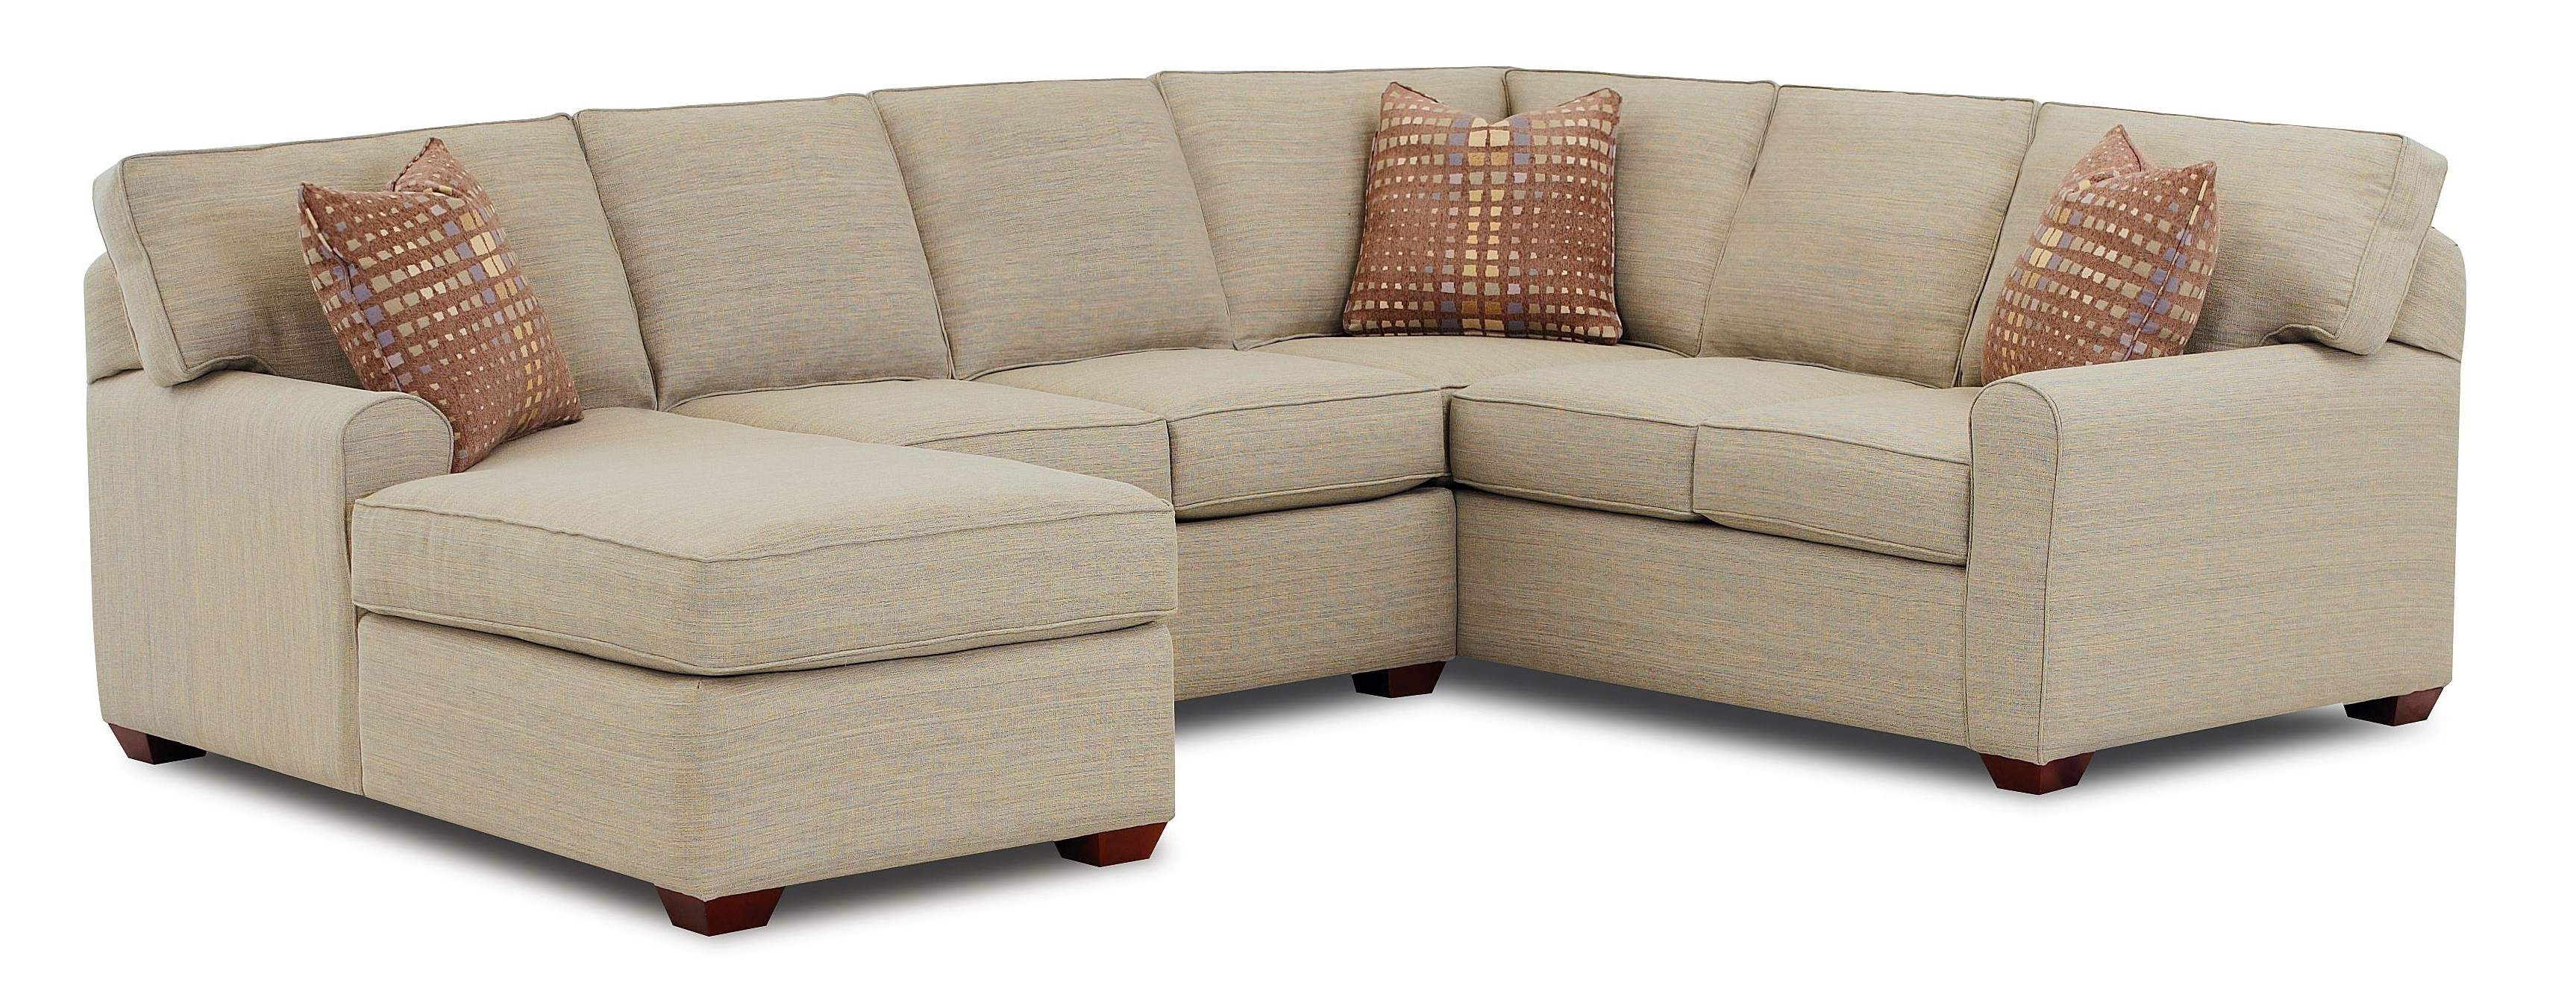 Widely Used Furniture: Chaise Sofa Sectional Chaise Sectional Inside Sectional Chaise Sofas (View 11 of 15)